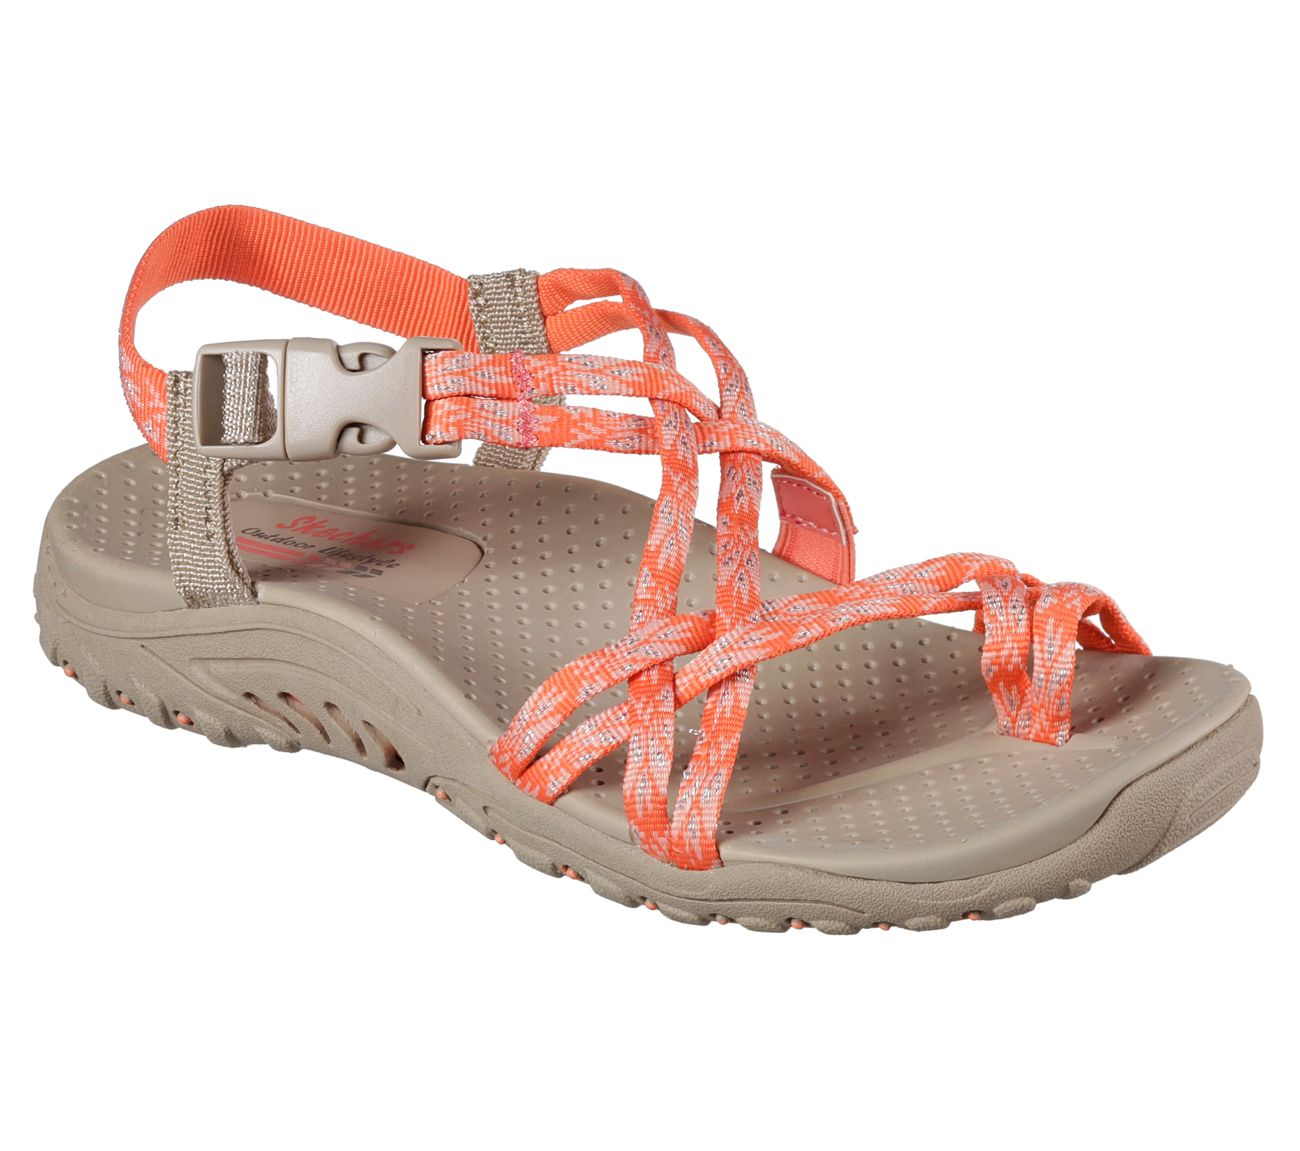 7be242971e7 They re like chacos